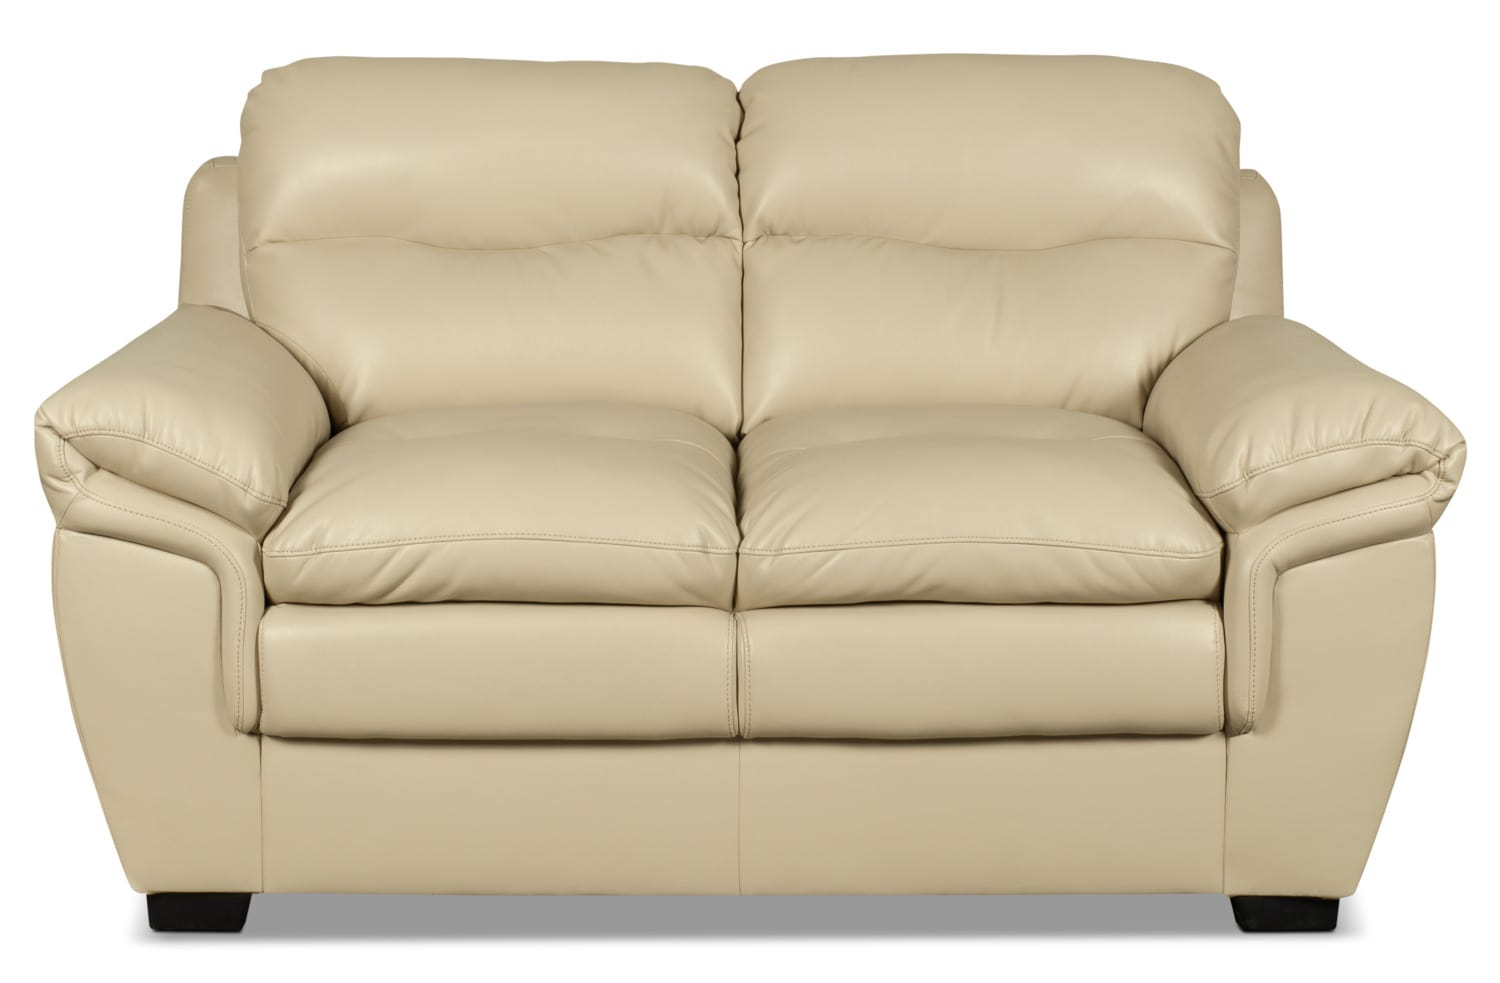 Bryon Leather Look Fabric Loveseat Cream United Furniture Warehouse